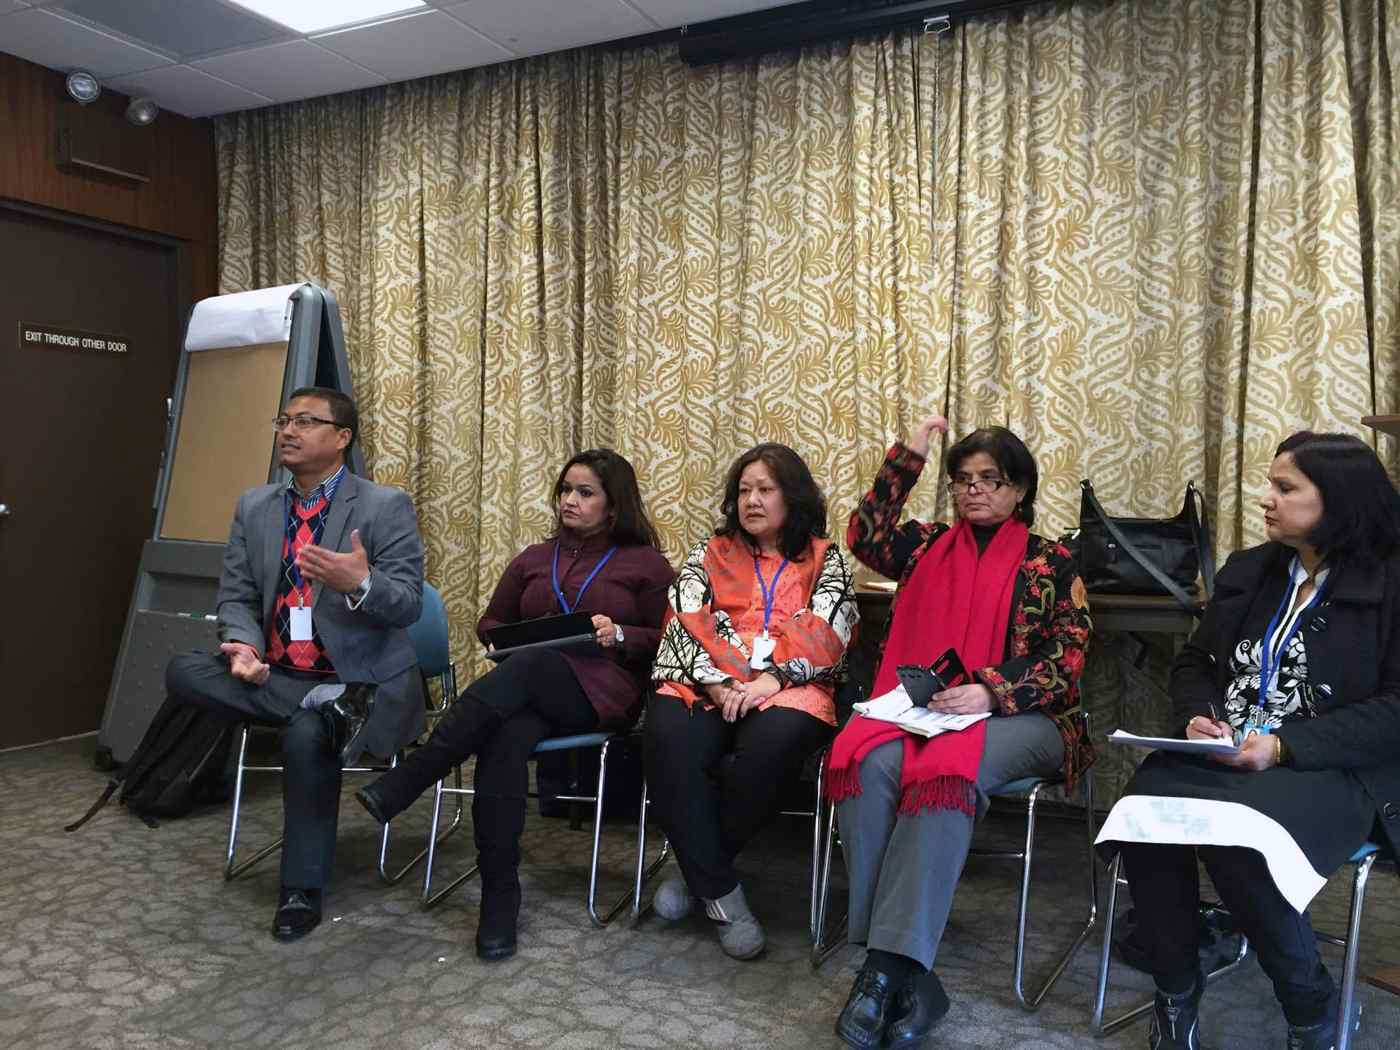 Advocate Sabin Shrestha, Executive Director of FWLD during the session of Access to Justice in CSW in March 2016